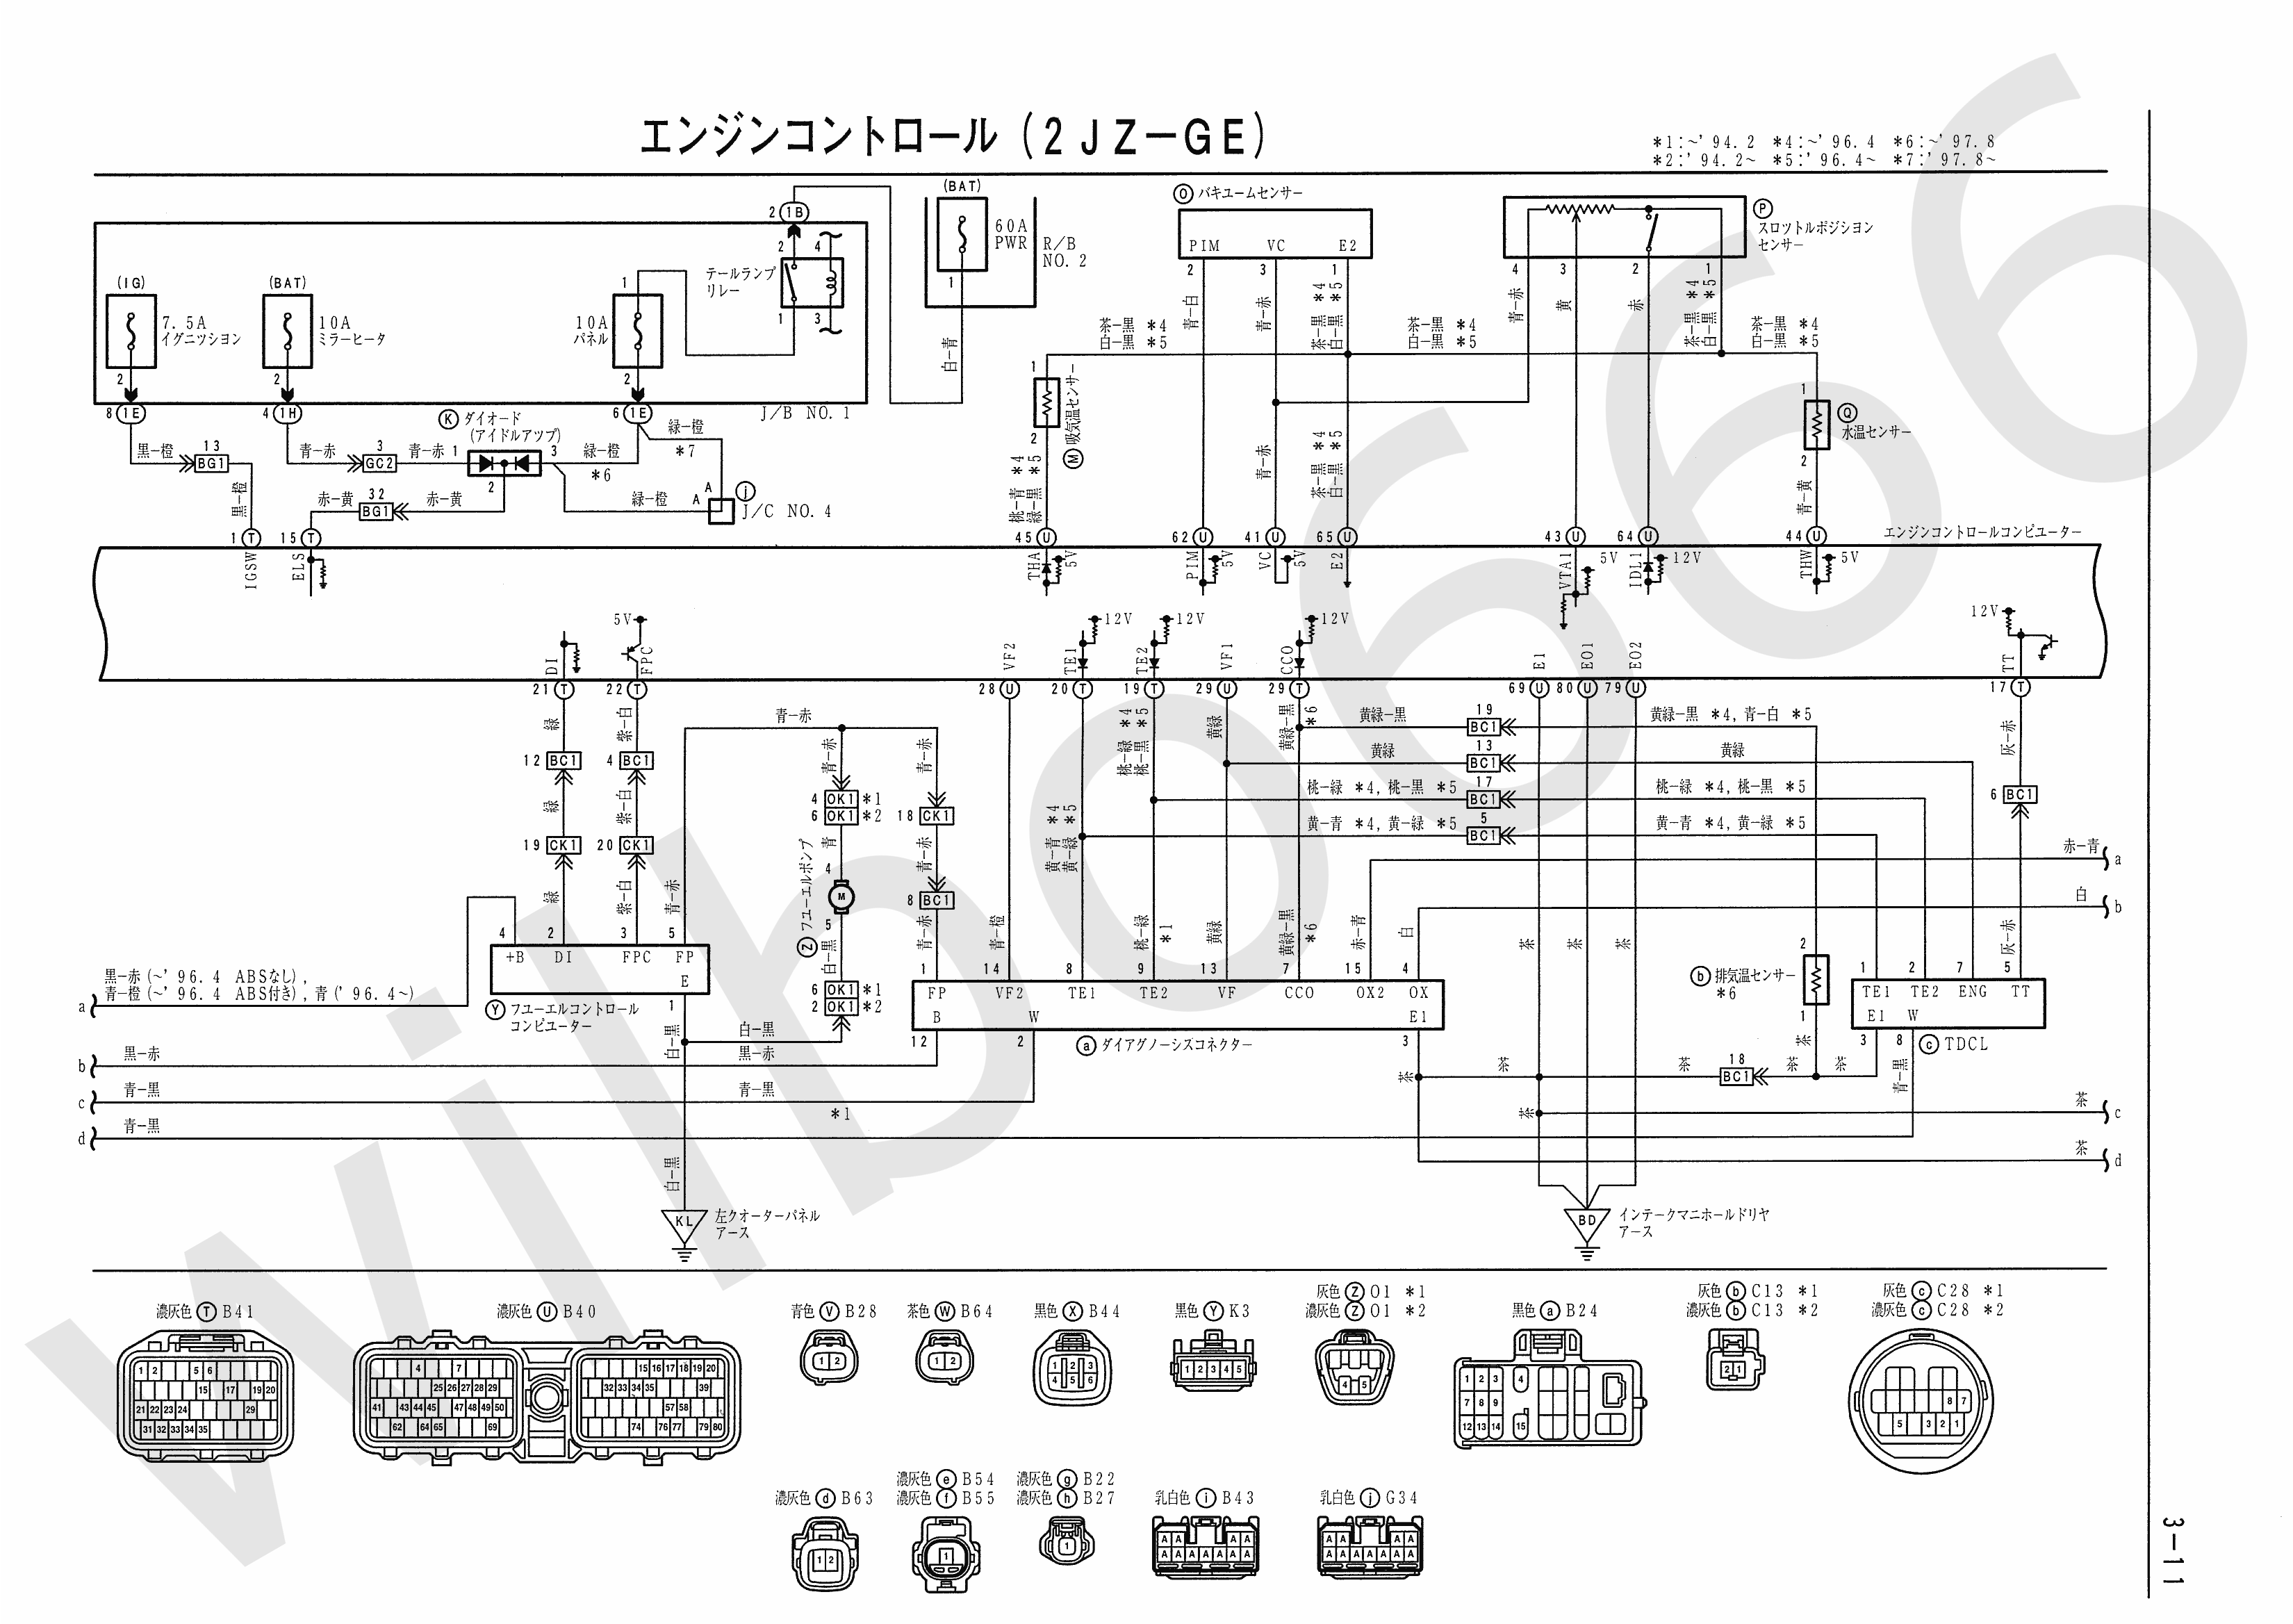 JZA80 Electrical Wiring Diagram 6742505 3 11?ssl=1 john deere gt275 wiring diagram electrial wiring diagram images  at eliteediting.co